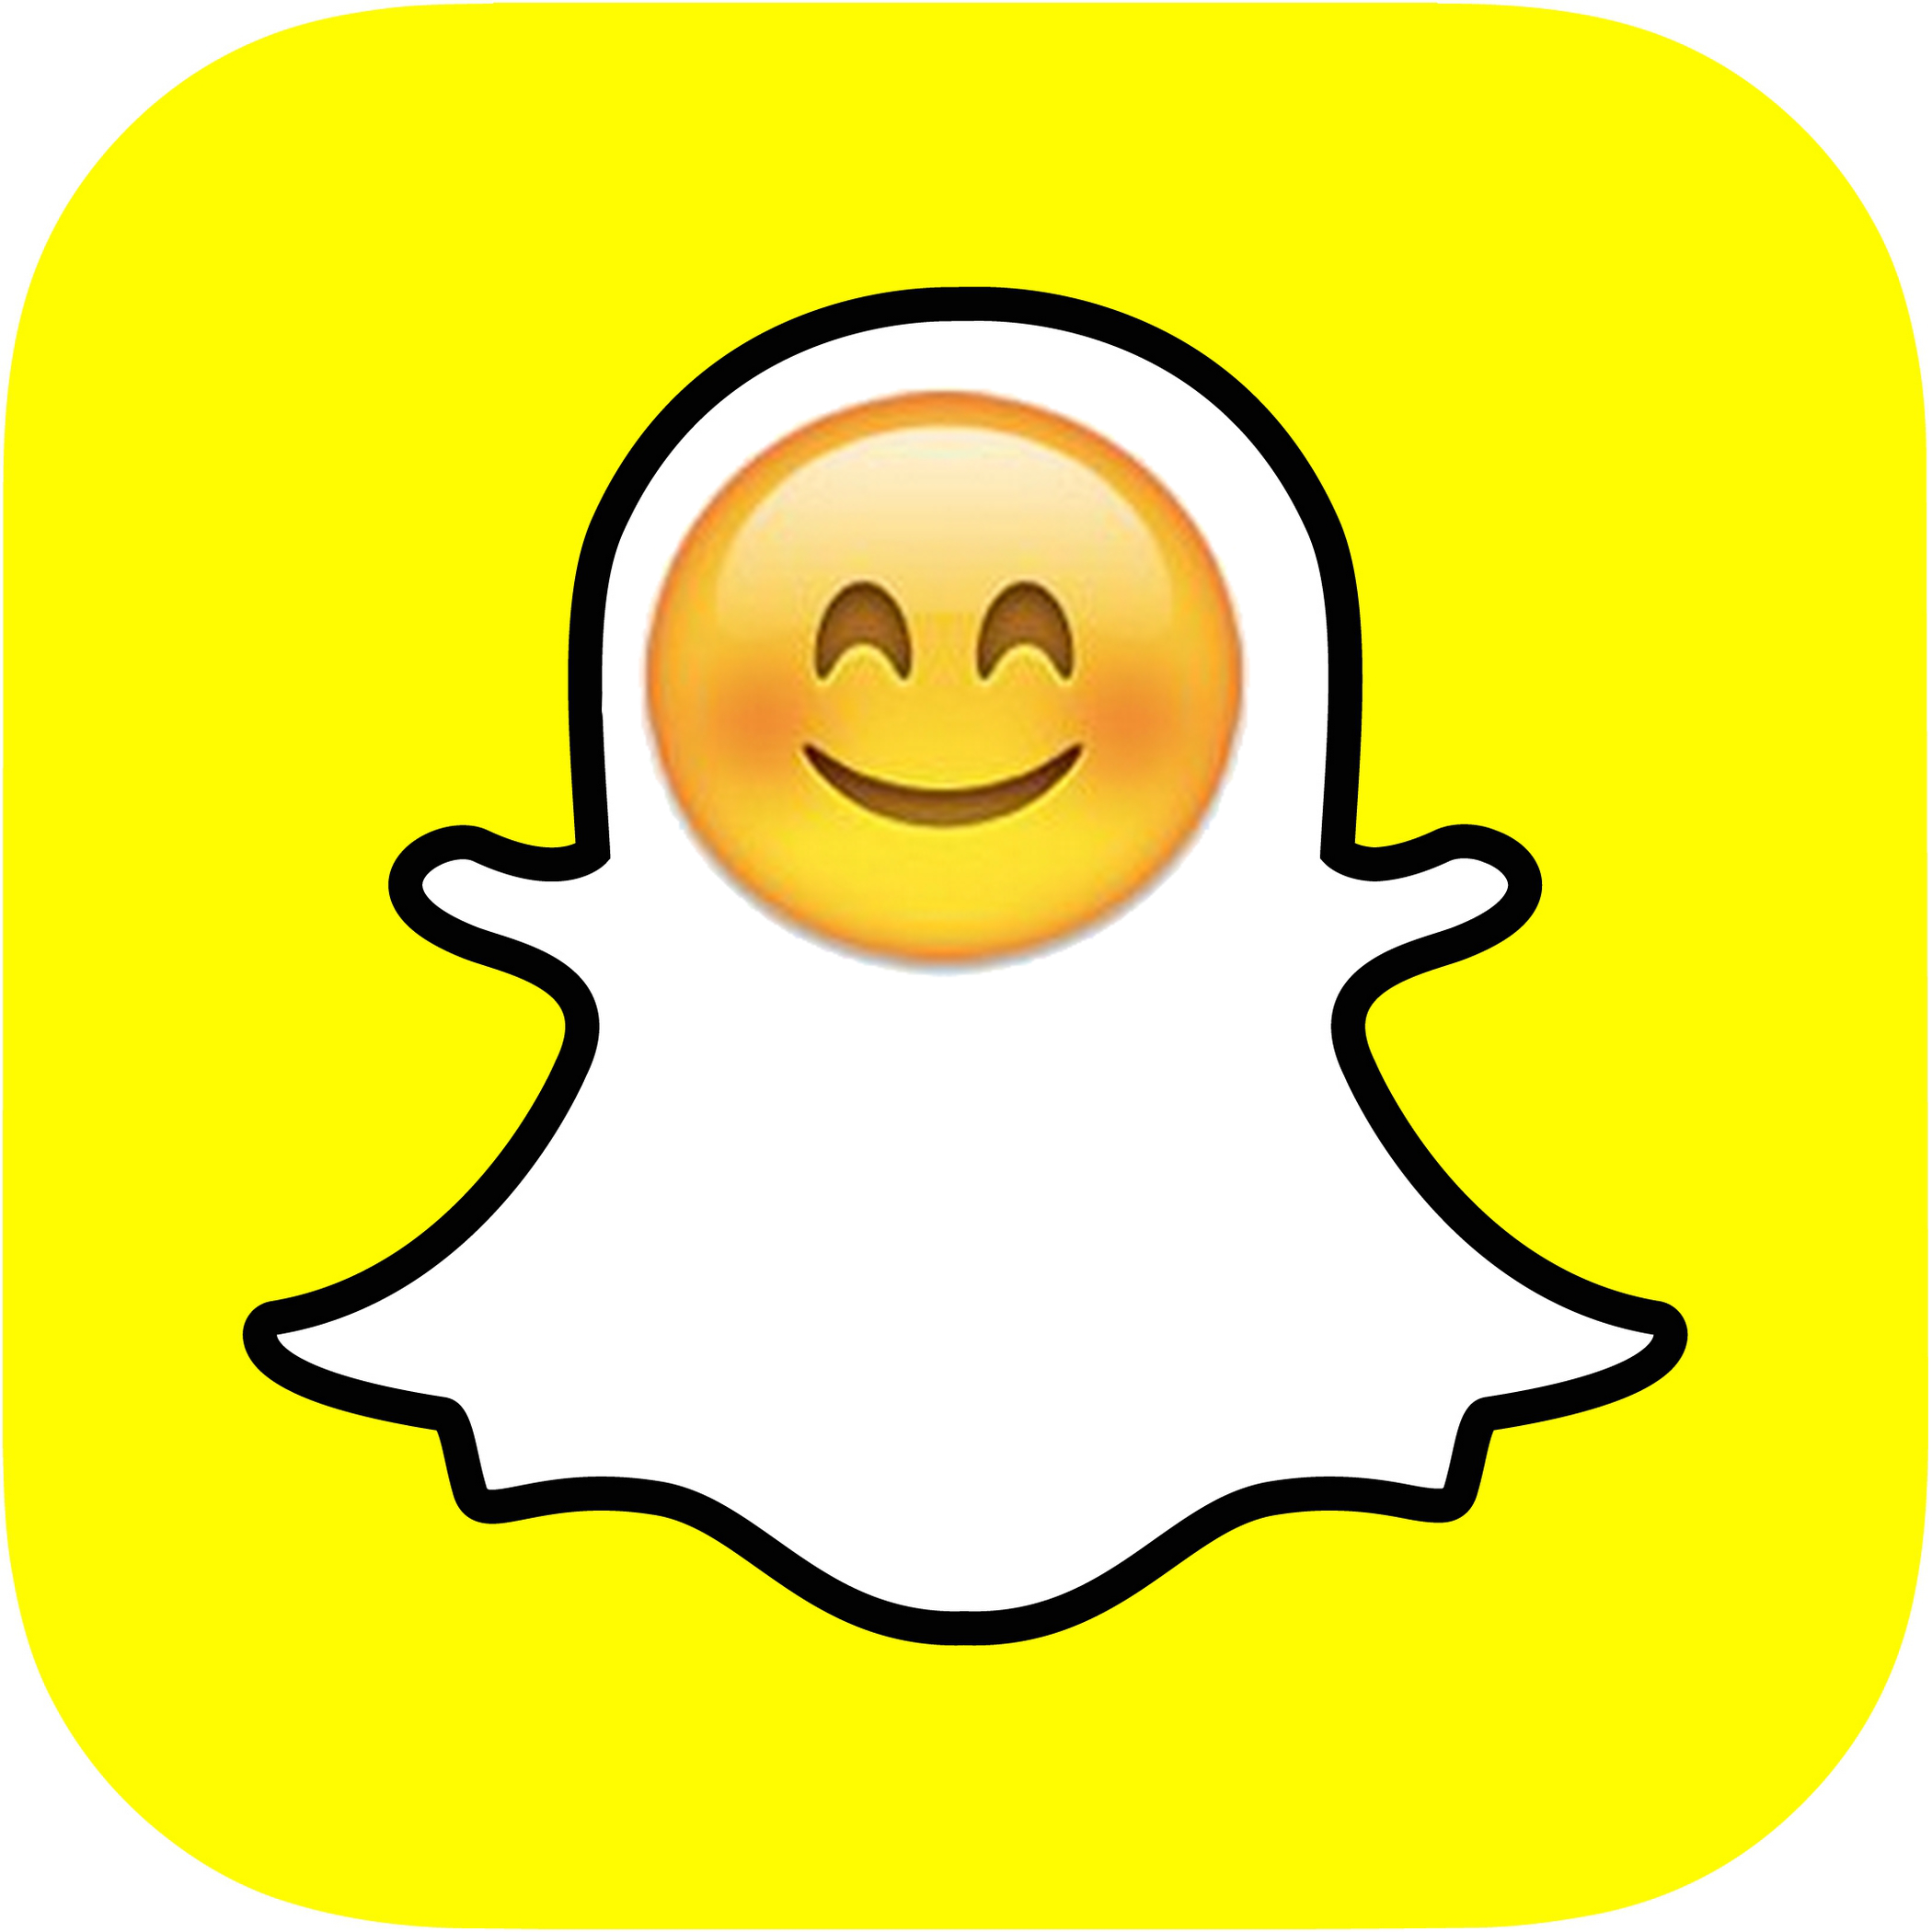 Complete list of snapchat emoji meanings and trophies what star complete list of snapchat emoji meanings and trophies what star beside names really means and how to get all trophy case emoji player biocorpaavc Choice Image